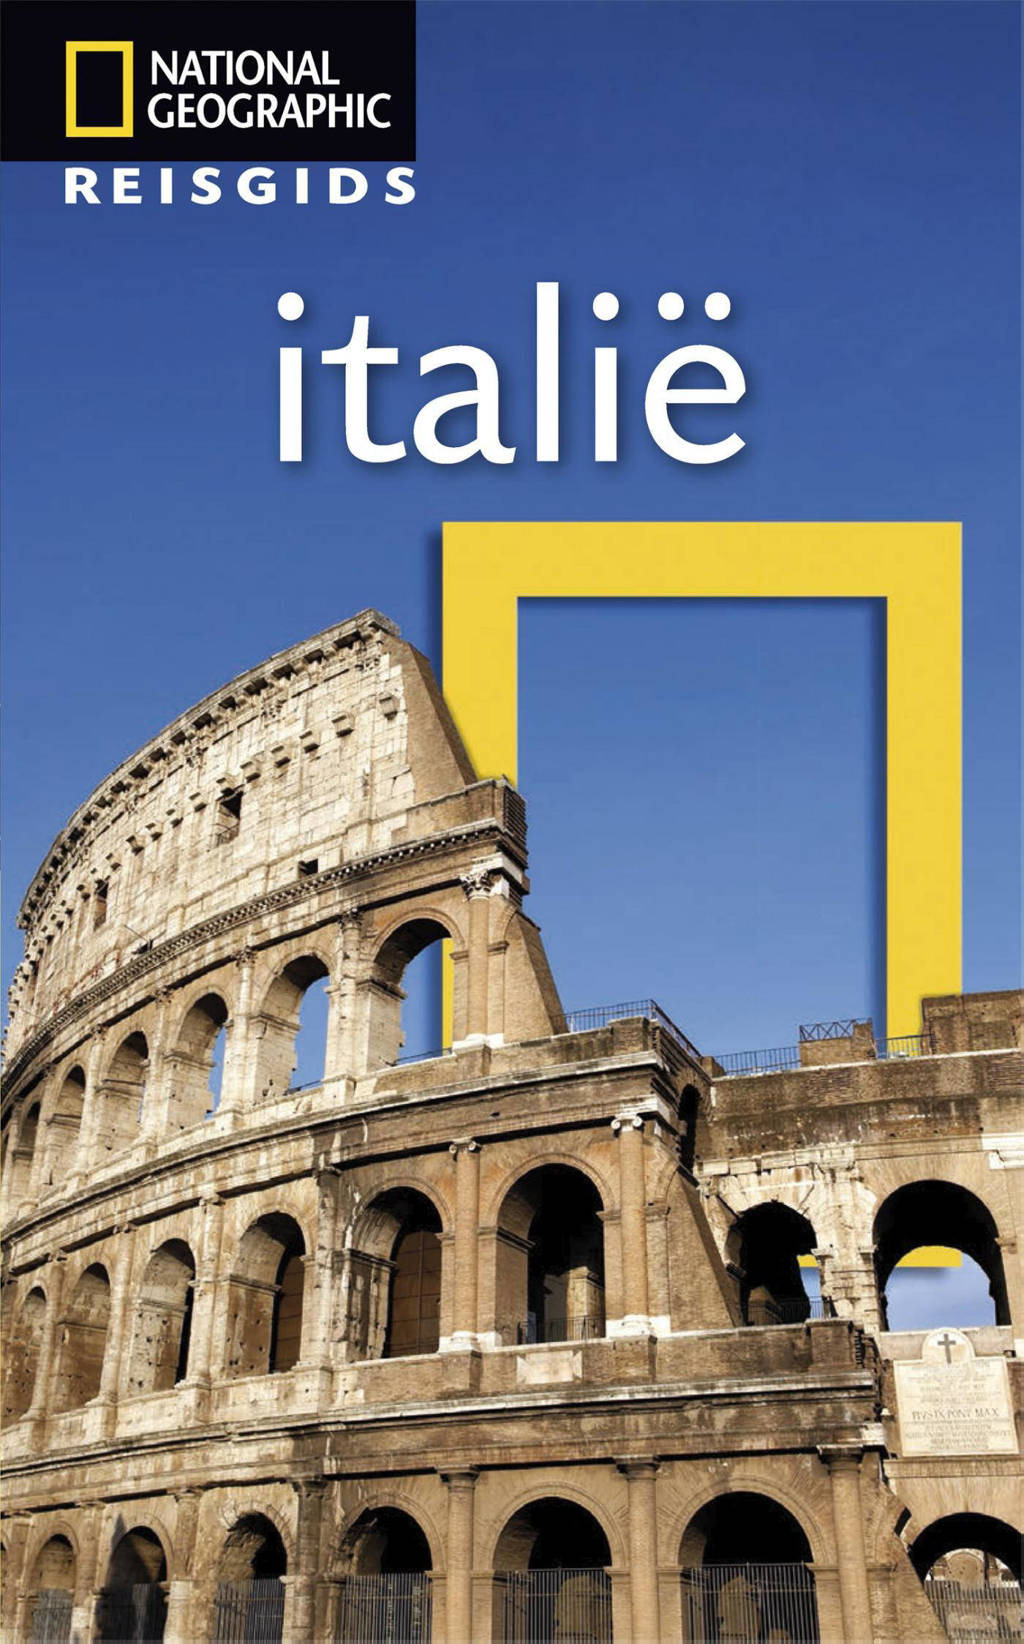 National Geographic Reisgids: Italië - National Geographic Reisgids